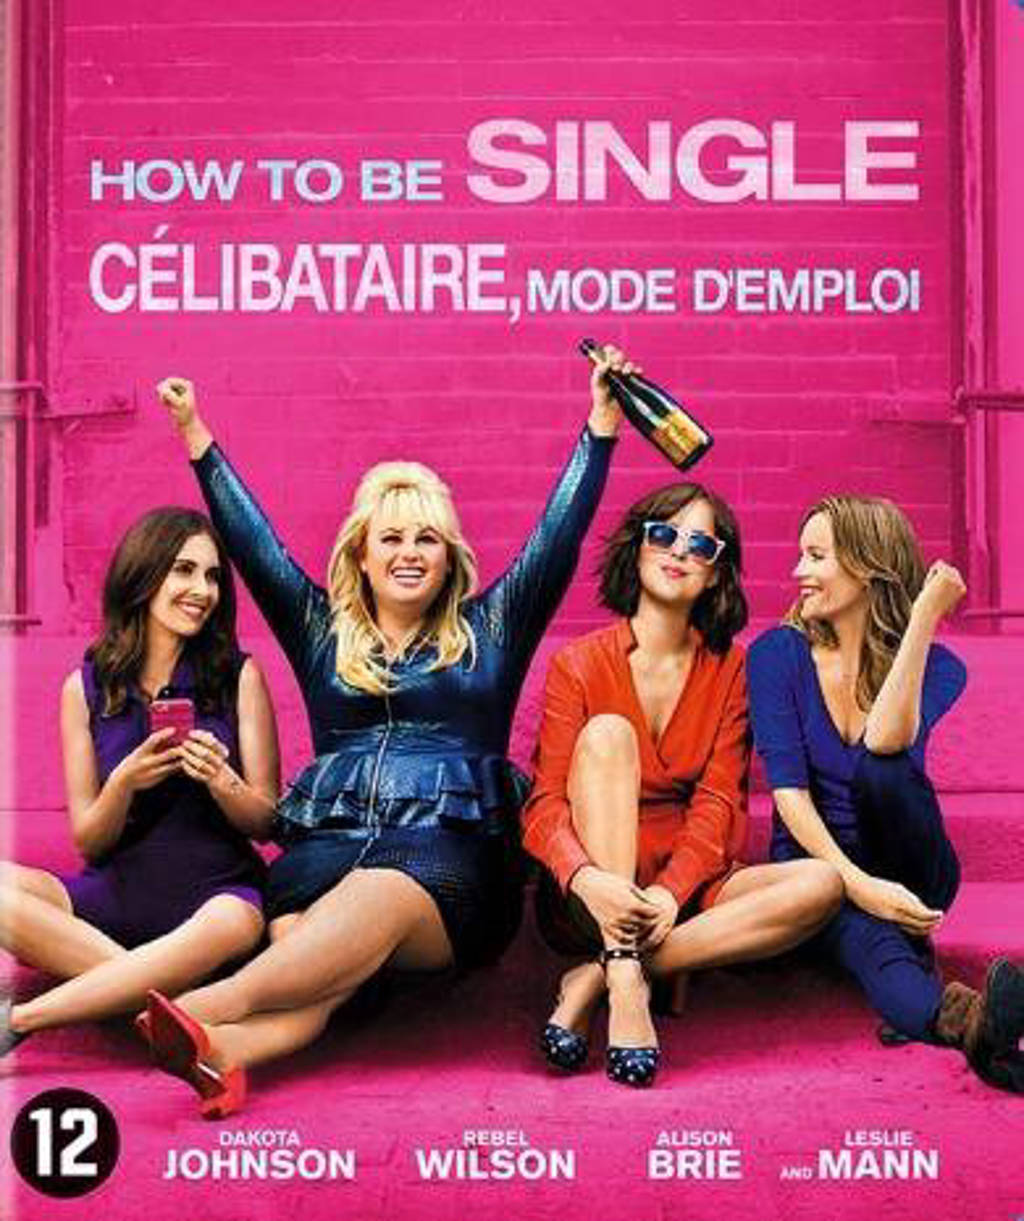 How to be single (Blu-ray)